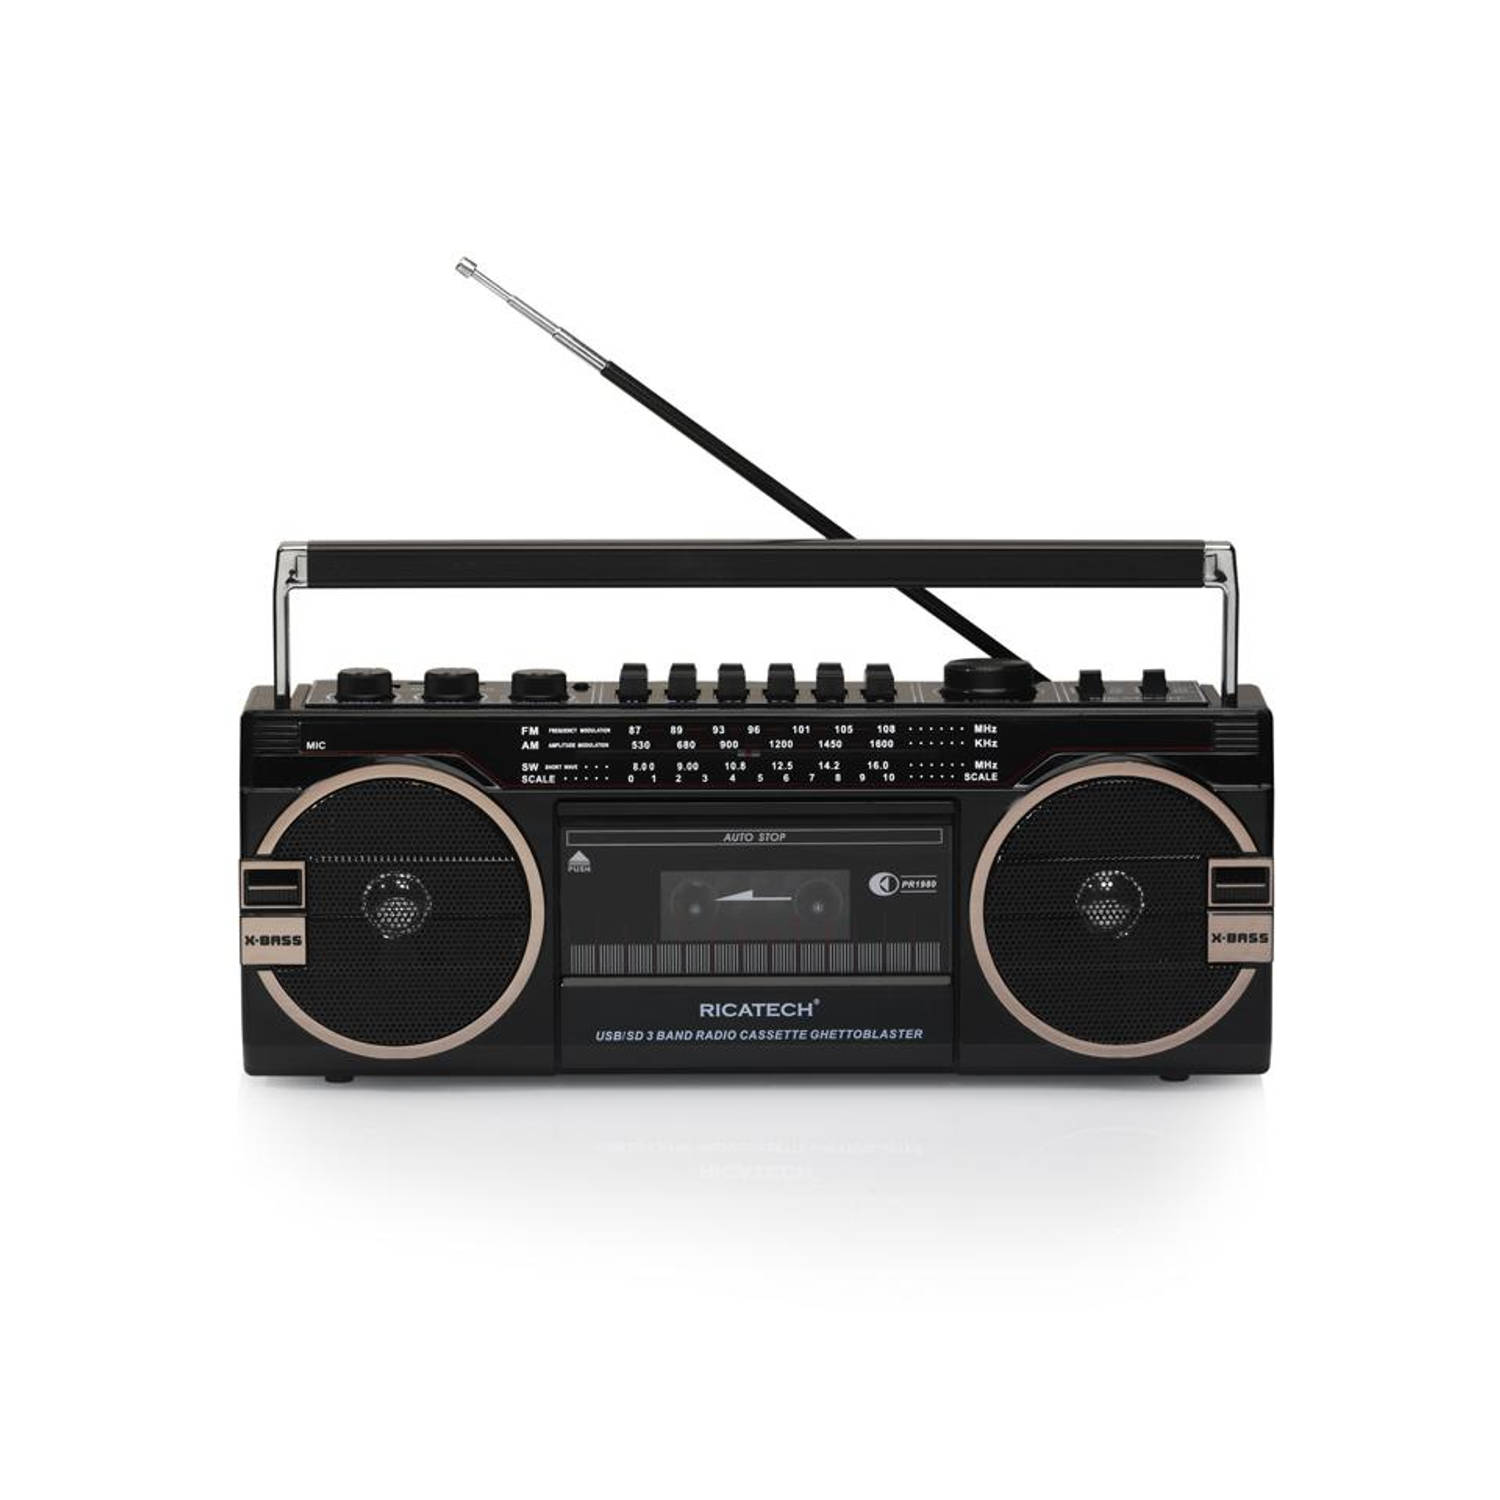 Ricatech retro radio USB ghettoblaster PR1980